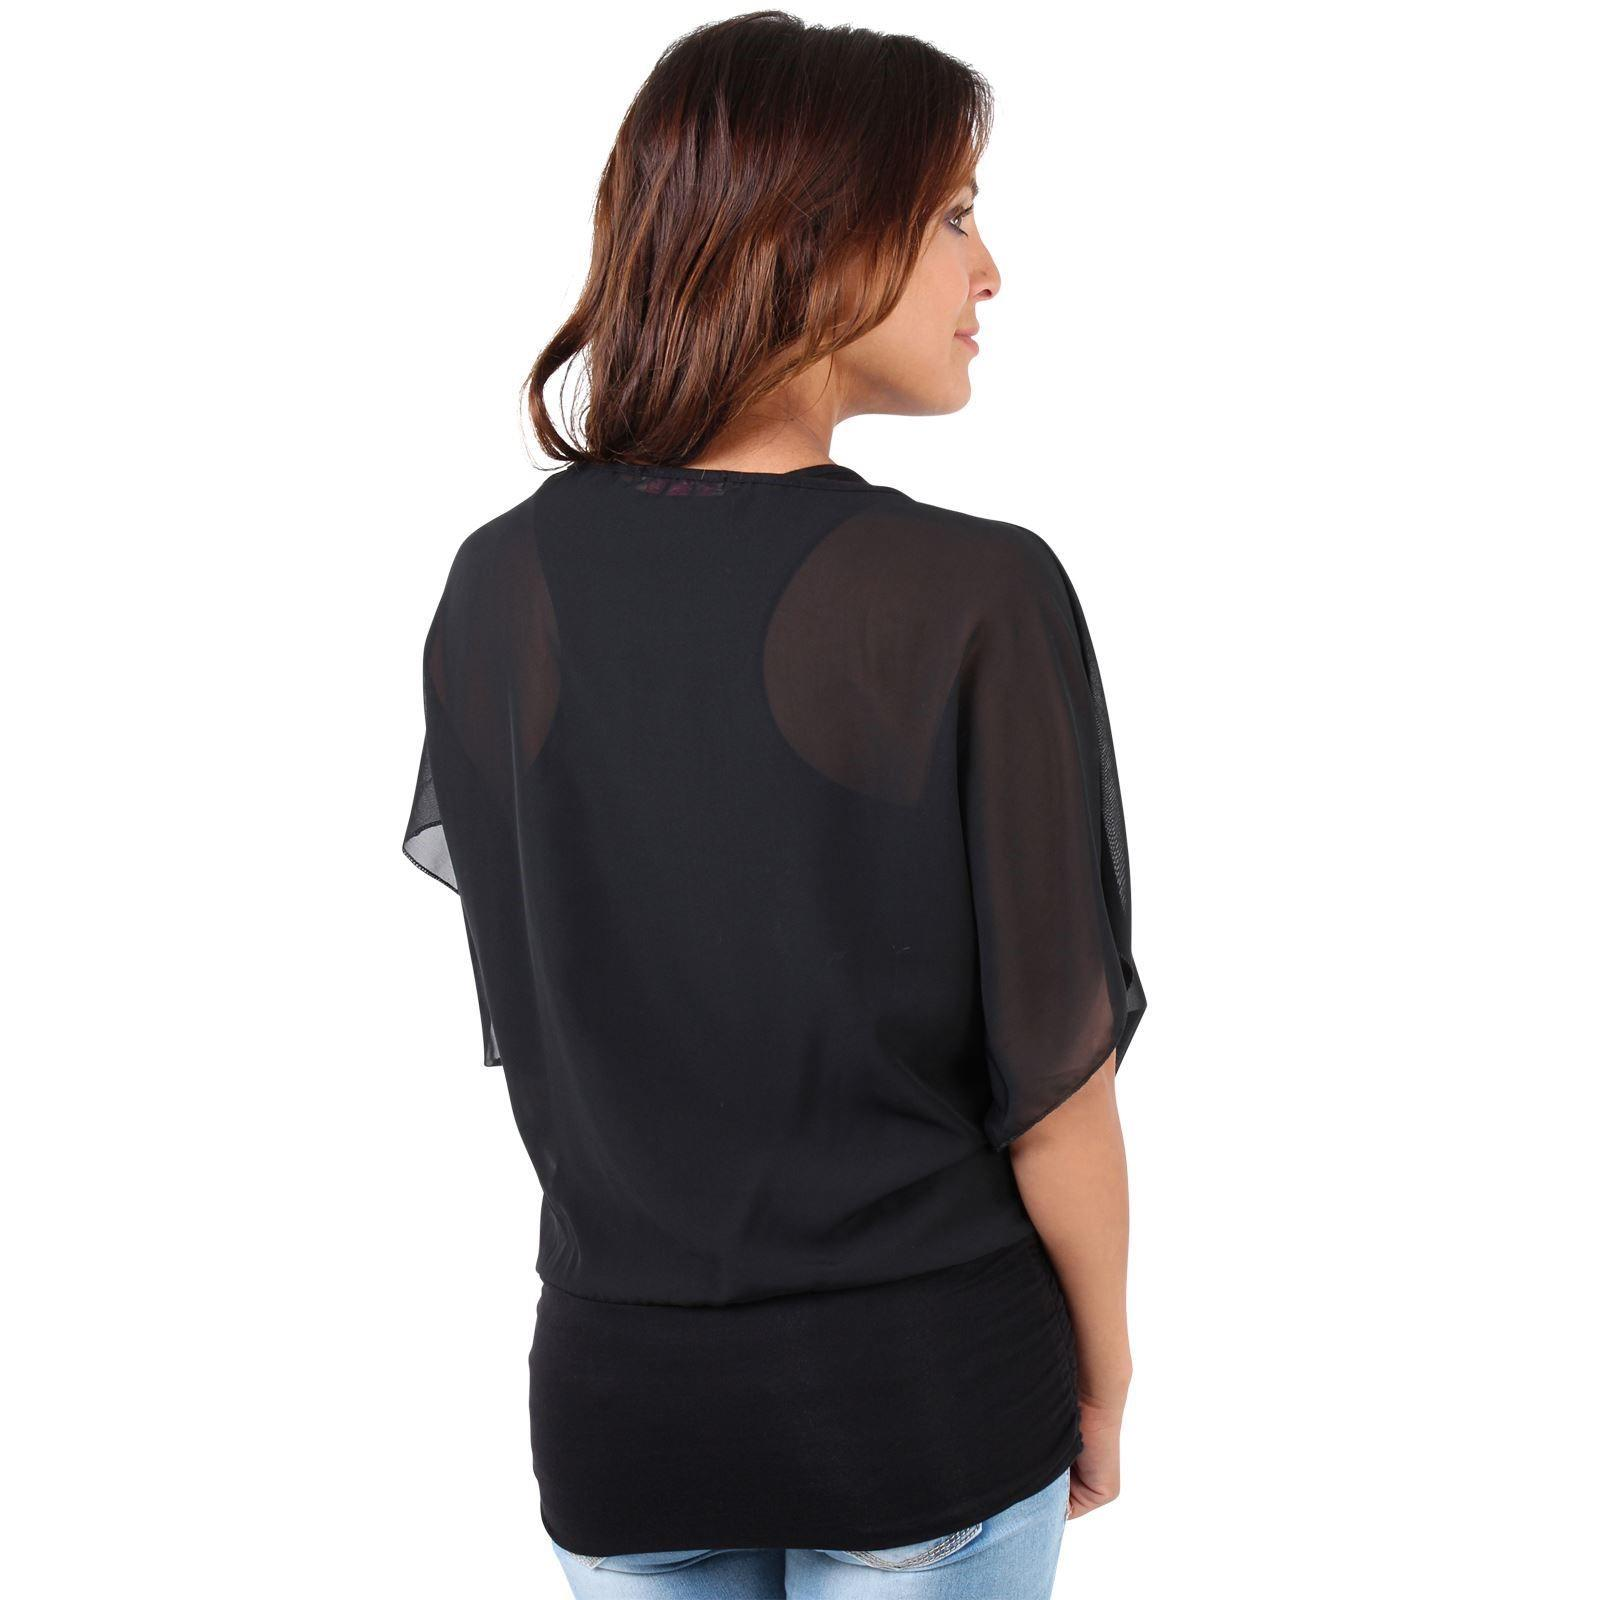 Womens-Scoop-Neck-Blouse-Baggy-Batwing-T-Shirt-Top-Ladies-Oversized-Chiffon-2in1 thumbnail 8